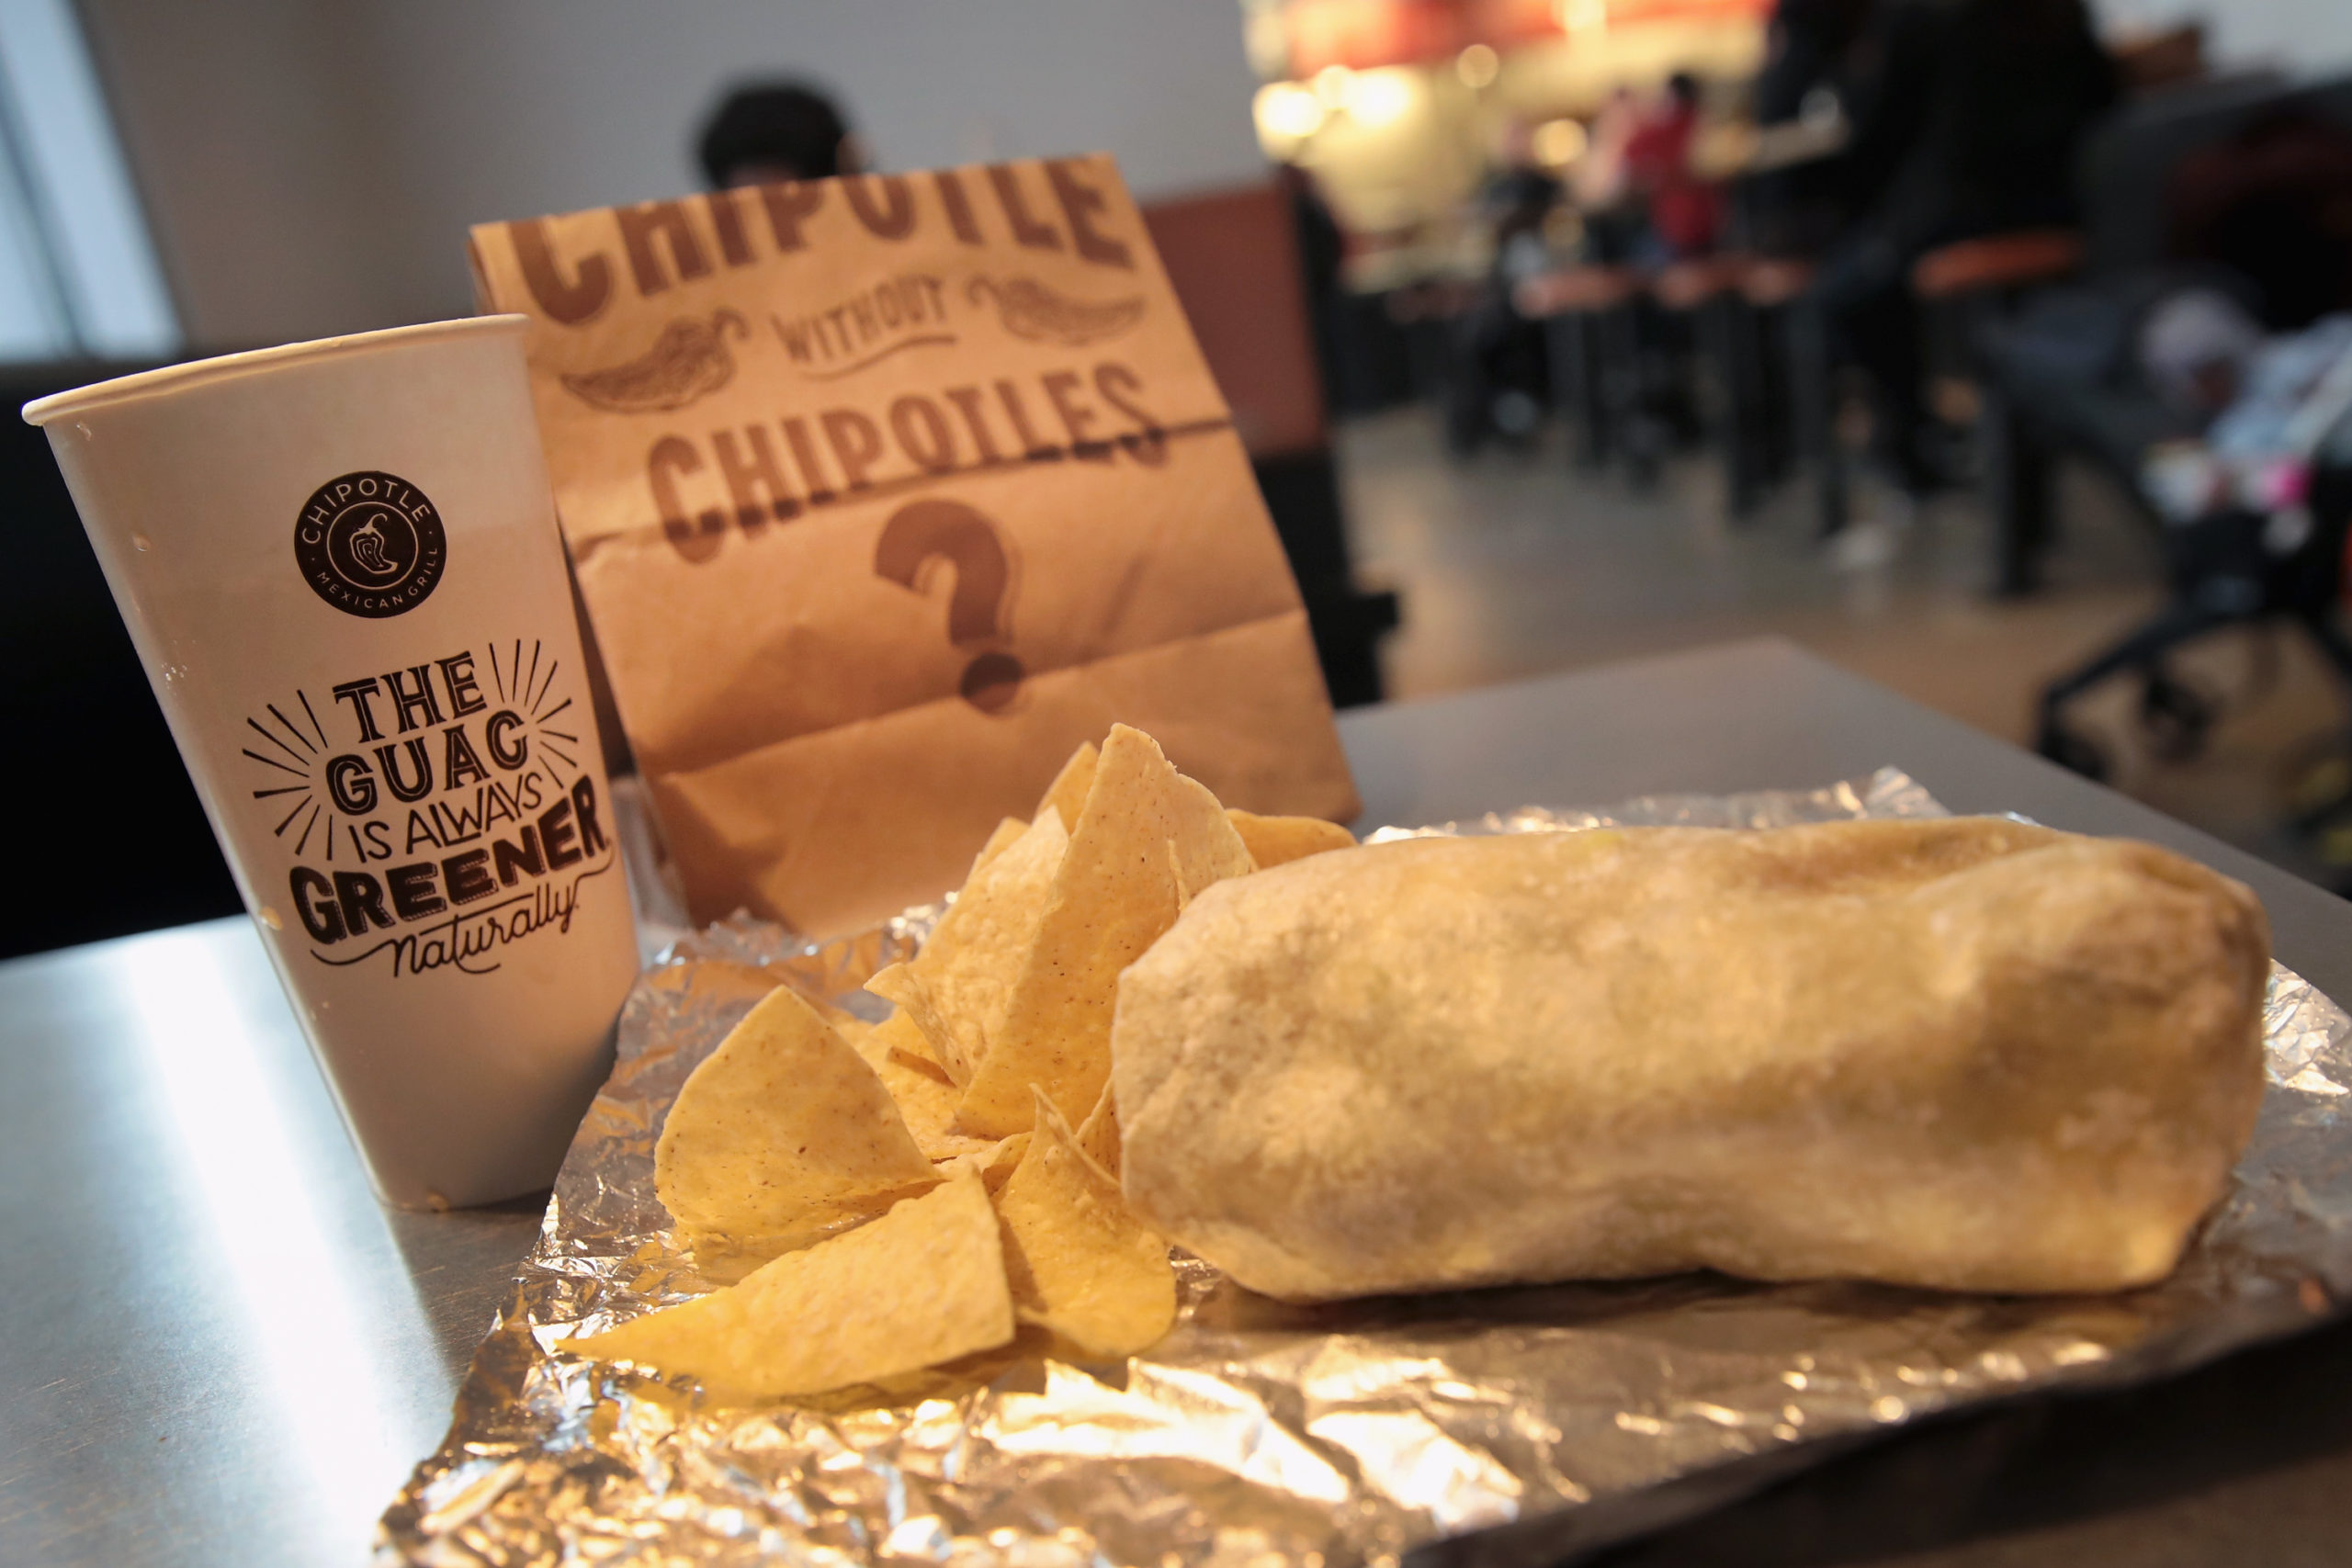 CHICAGO, IL - OCTOBER 25: Food is served at a Chipotle restaurant on October 25, 2017 in Chicago, Illinois. Chipotle stock fell more than 14 percent today after a weak 3Q earnings. (Photo Illustration by Scott Olson/Getty Images)